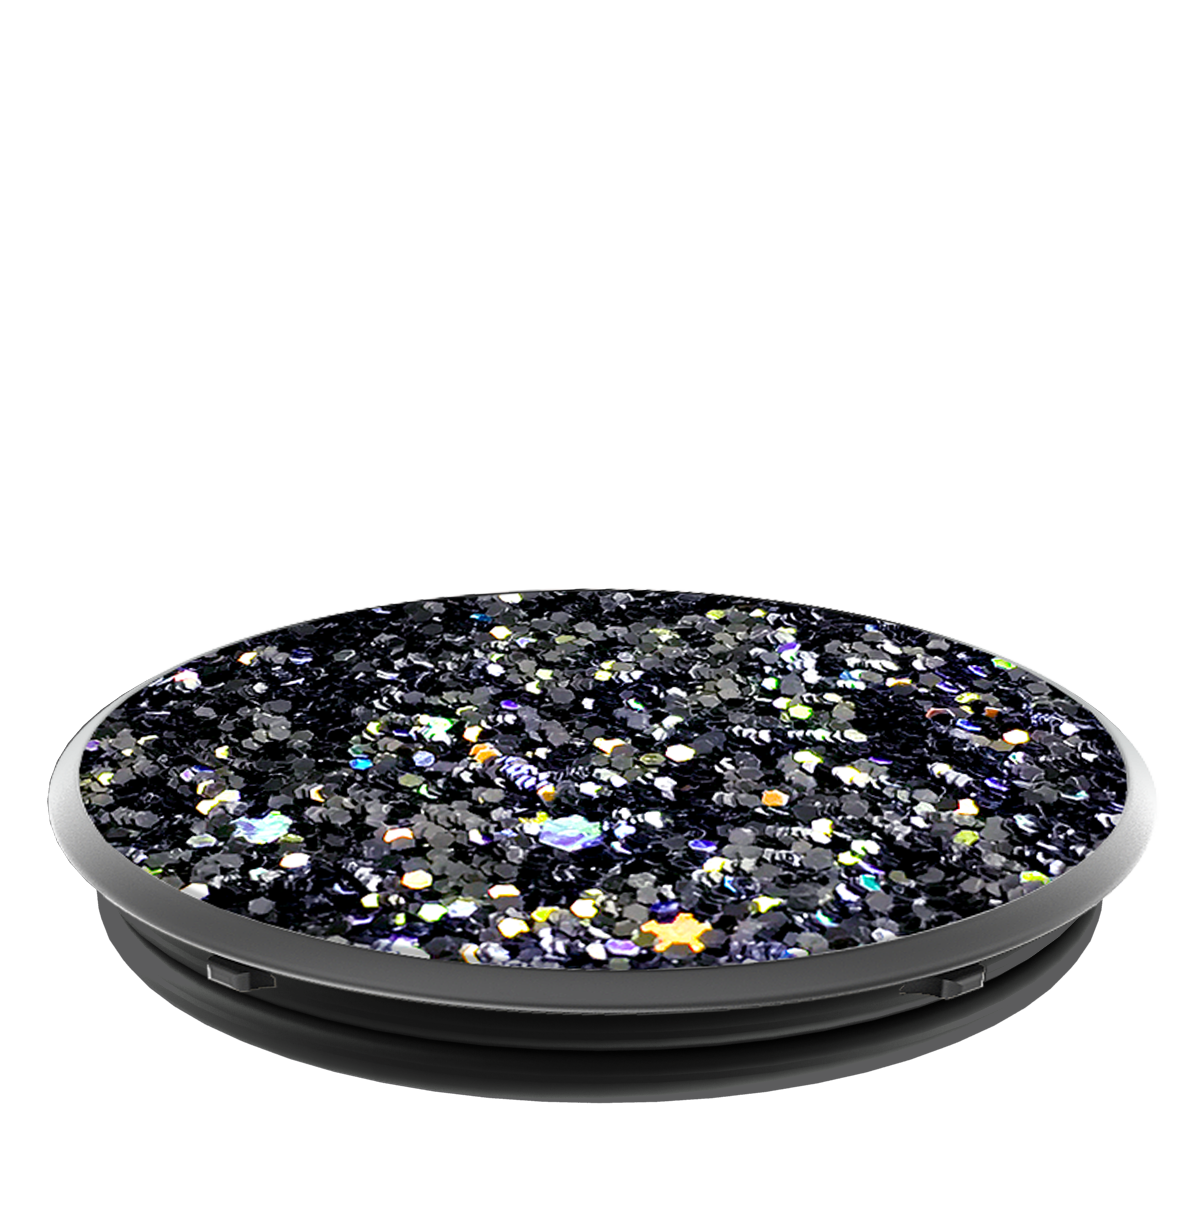 PopSockets Grip Sparkle Black